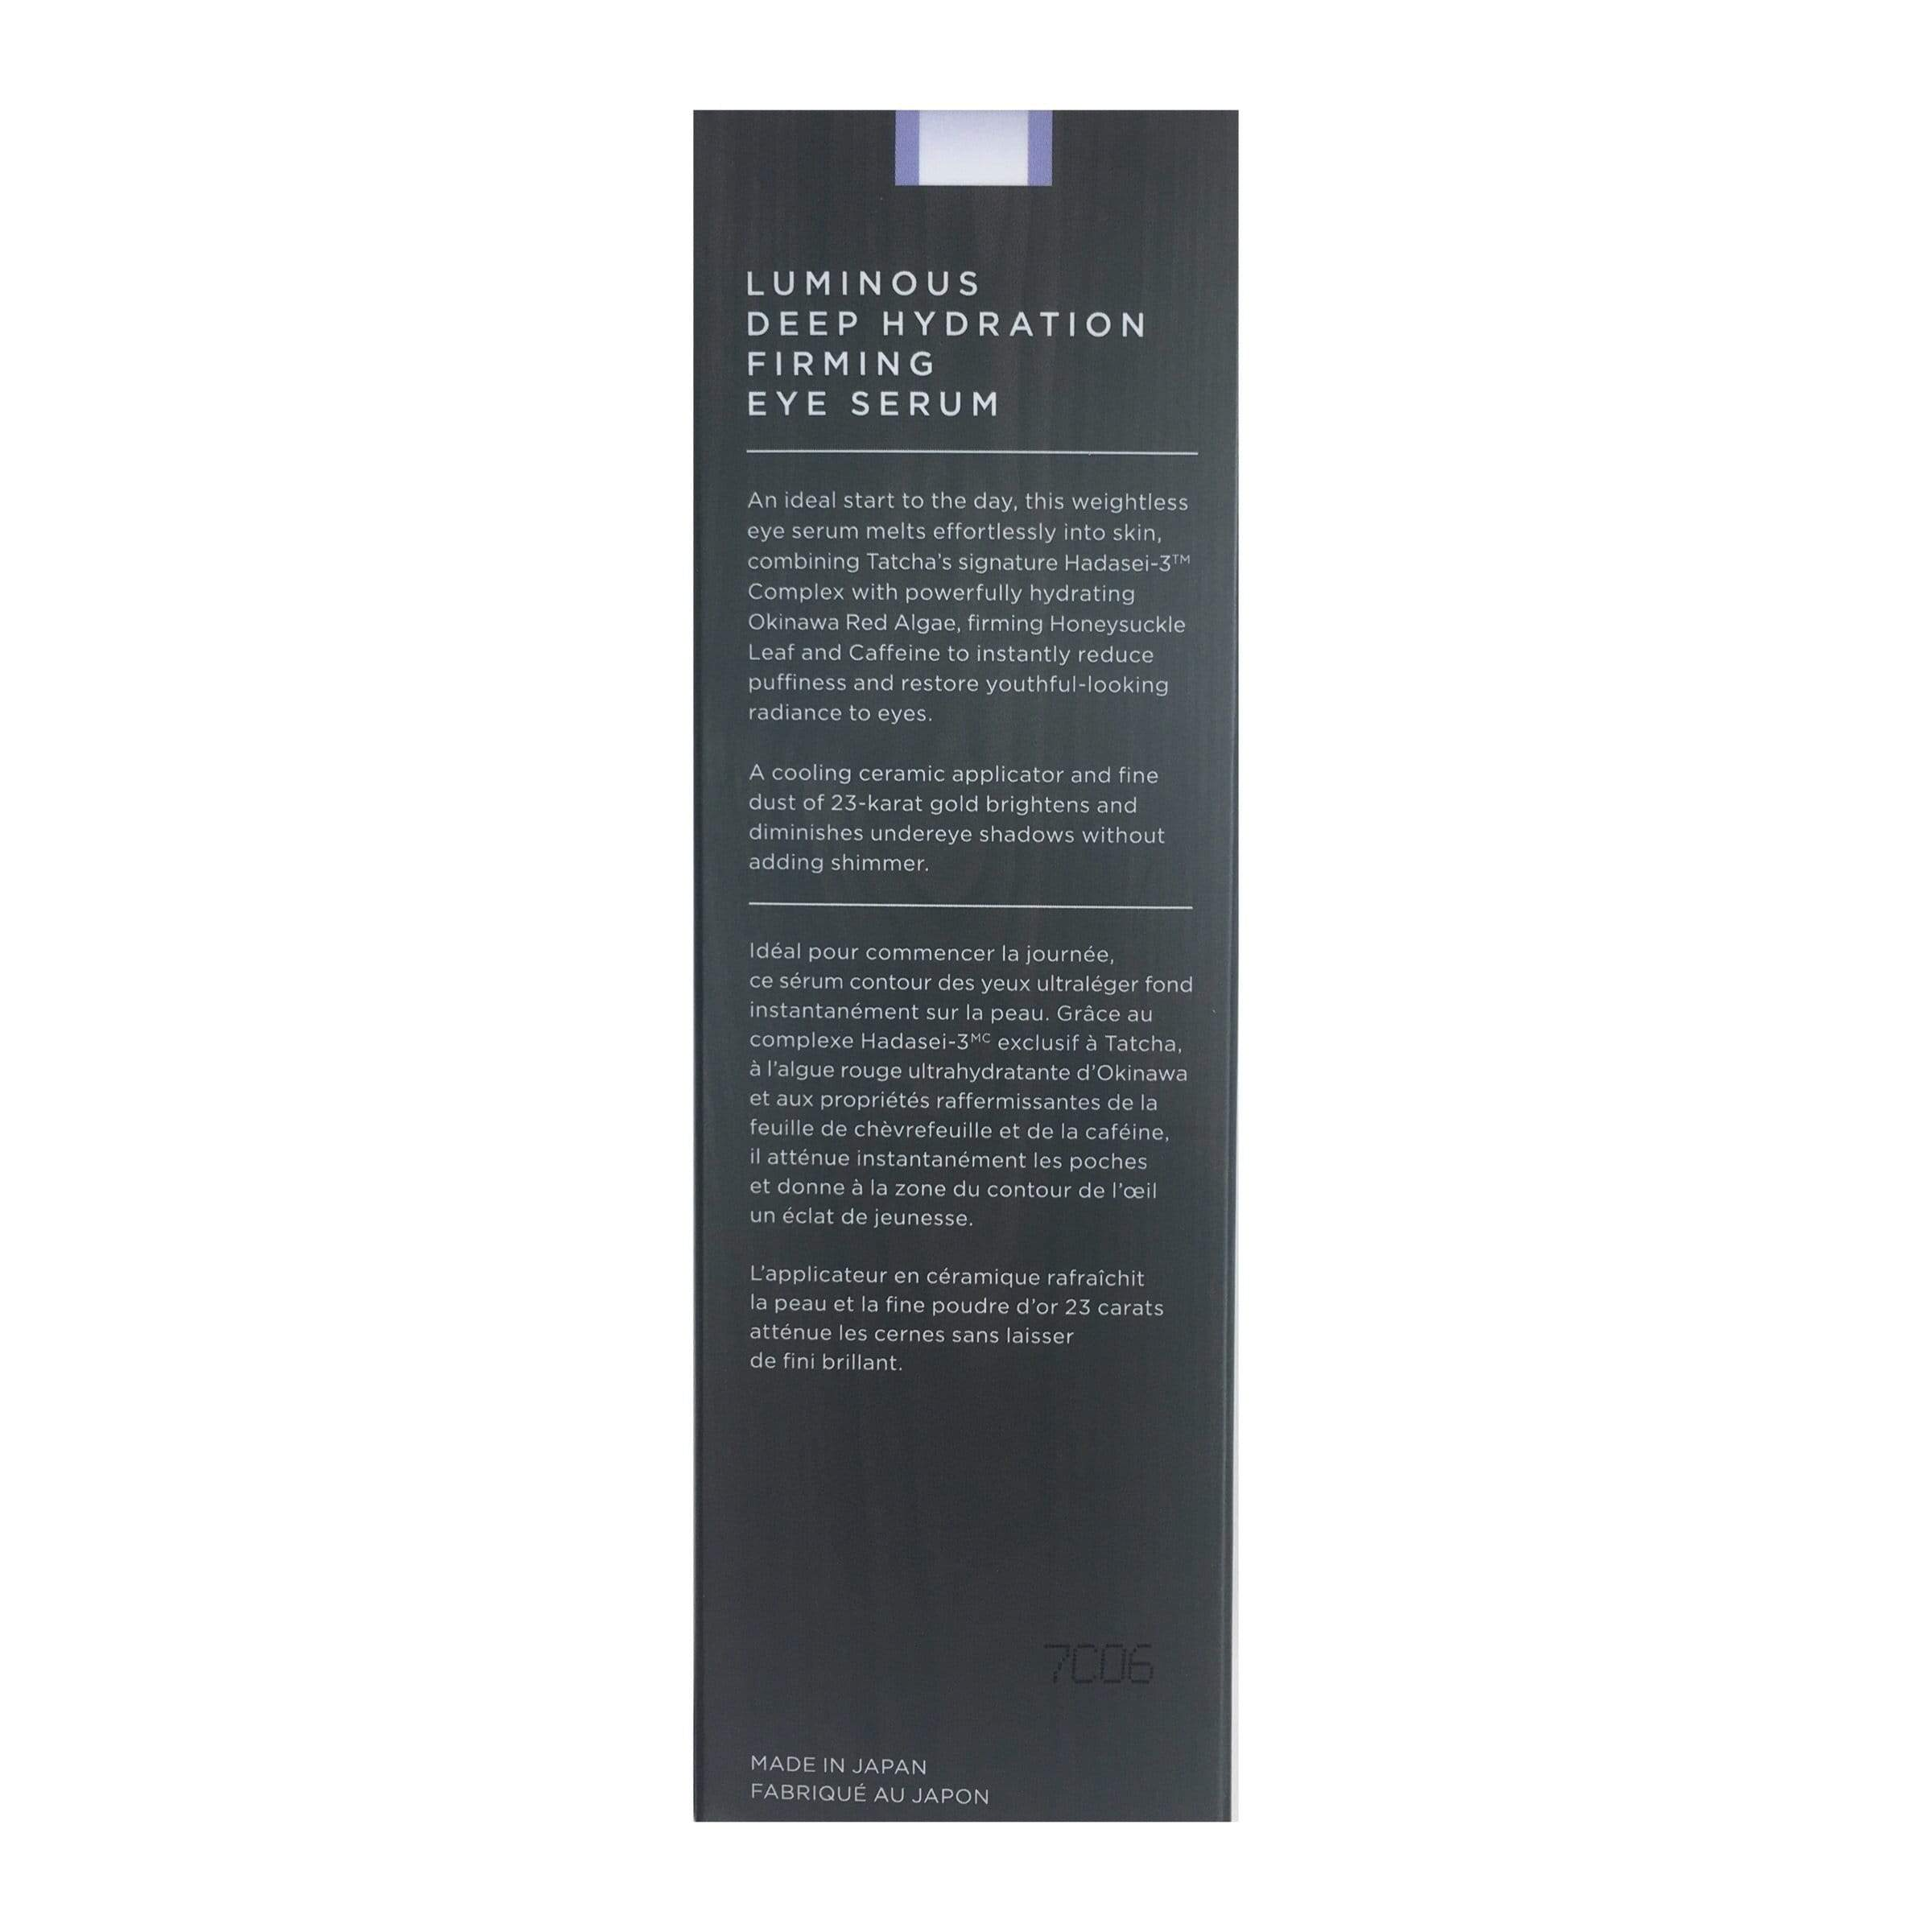 Tatcha Luminous Deep Hydration Firming Eye Serum, 15 ML | 0.5 FL. OZ., Skin Care, London Loves Beauty